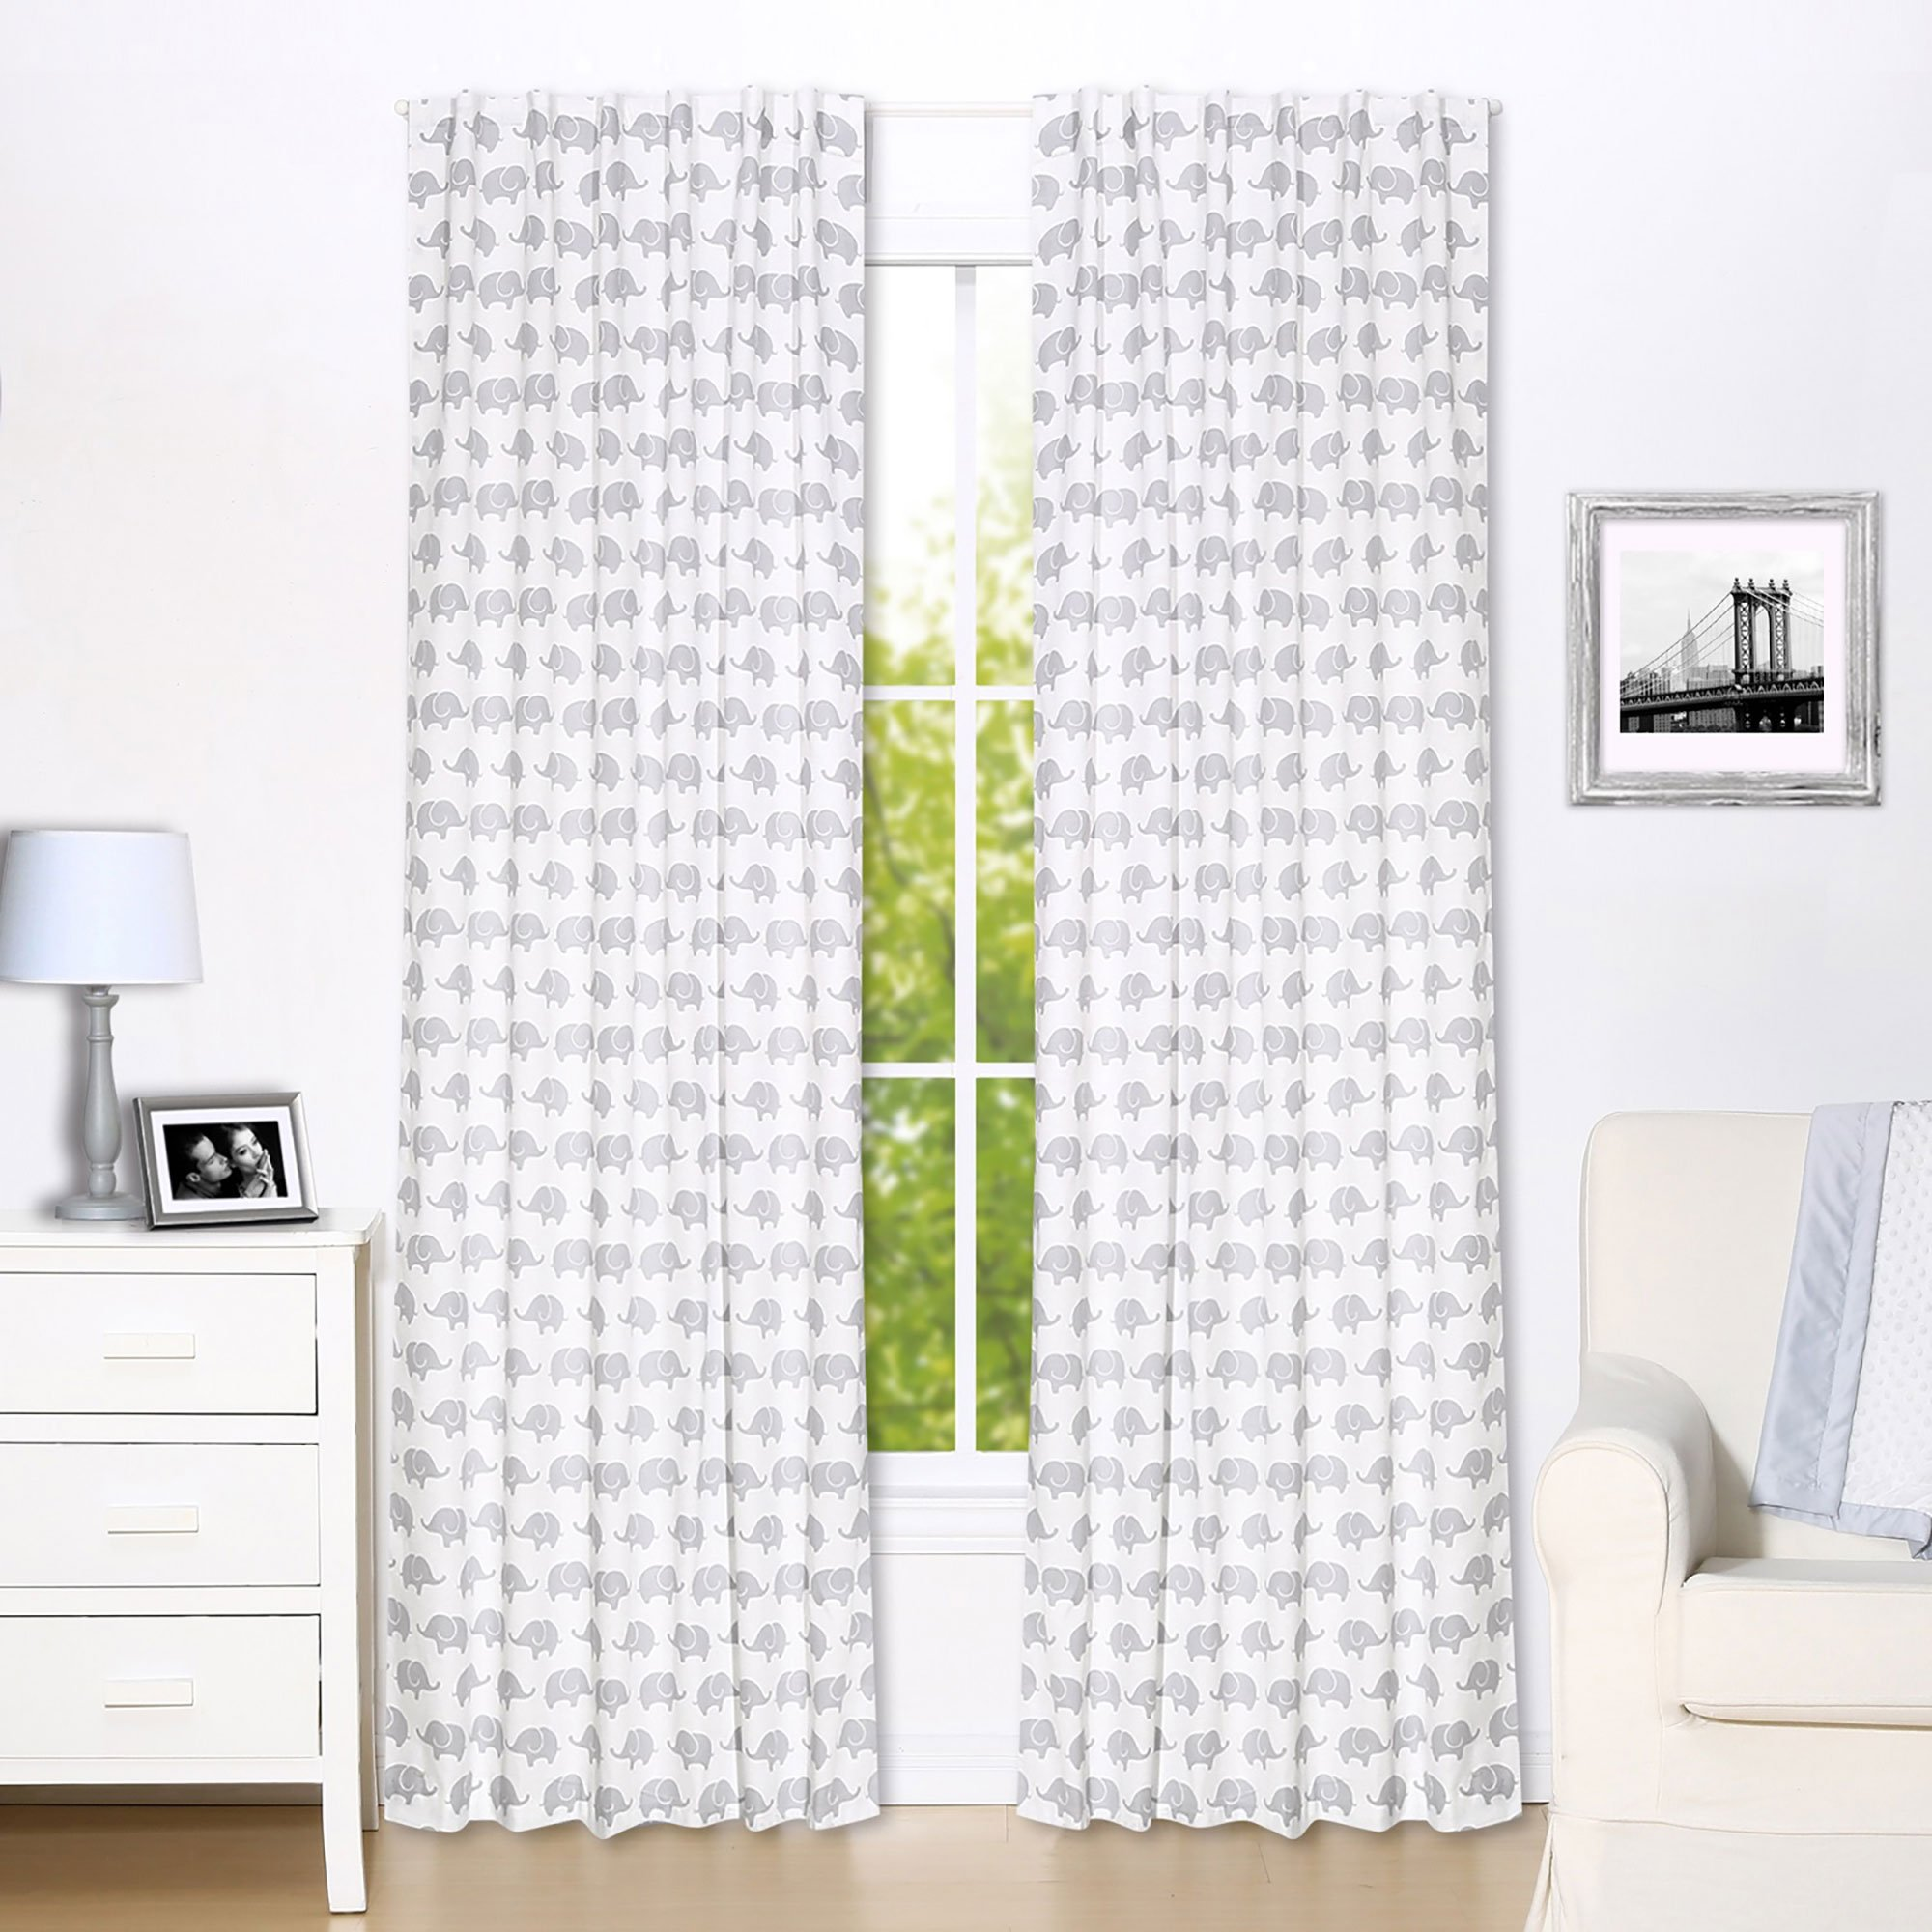 Grey Elephant Print Blackout Window Drapery Panels - Two 84 by 42 Inch Panels